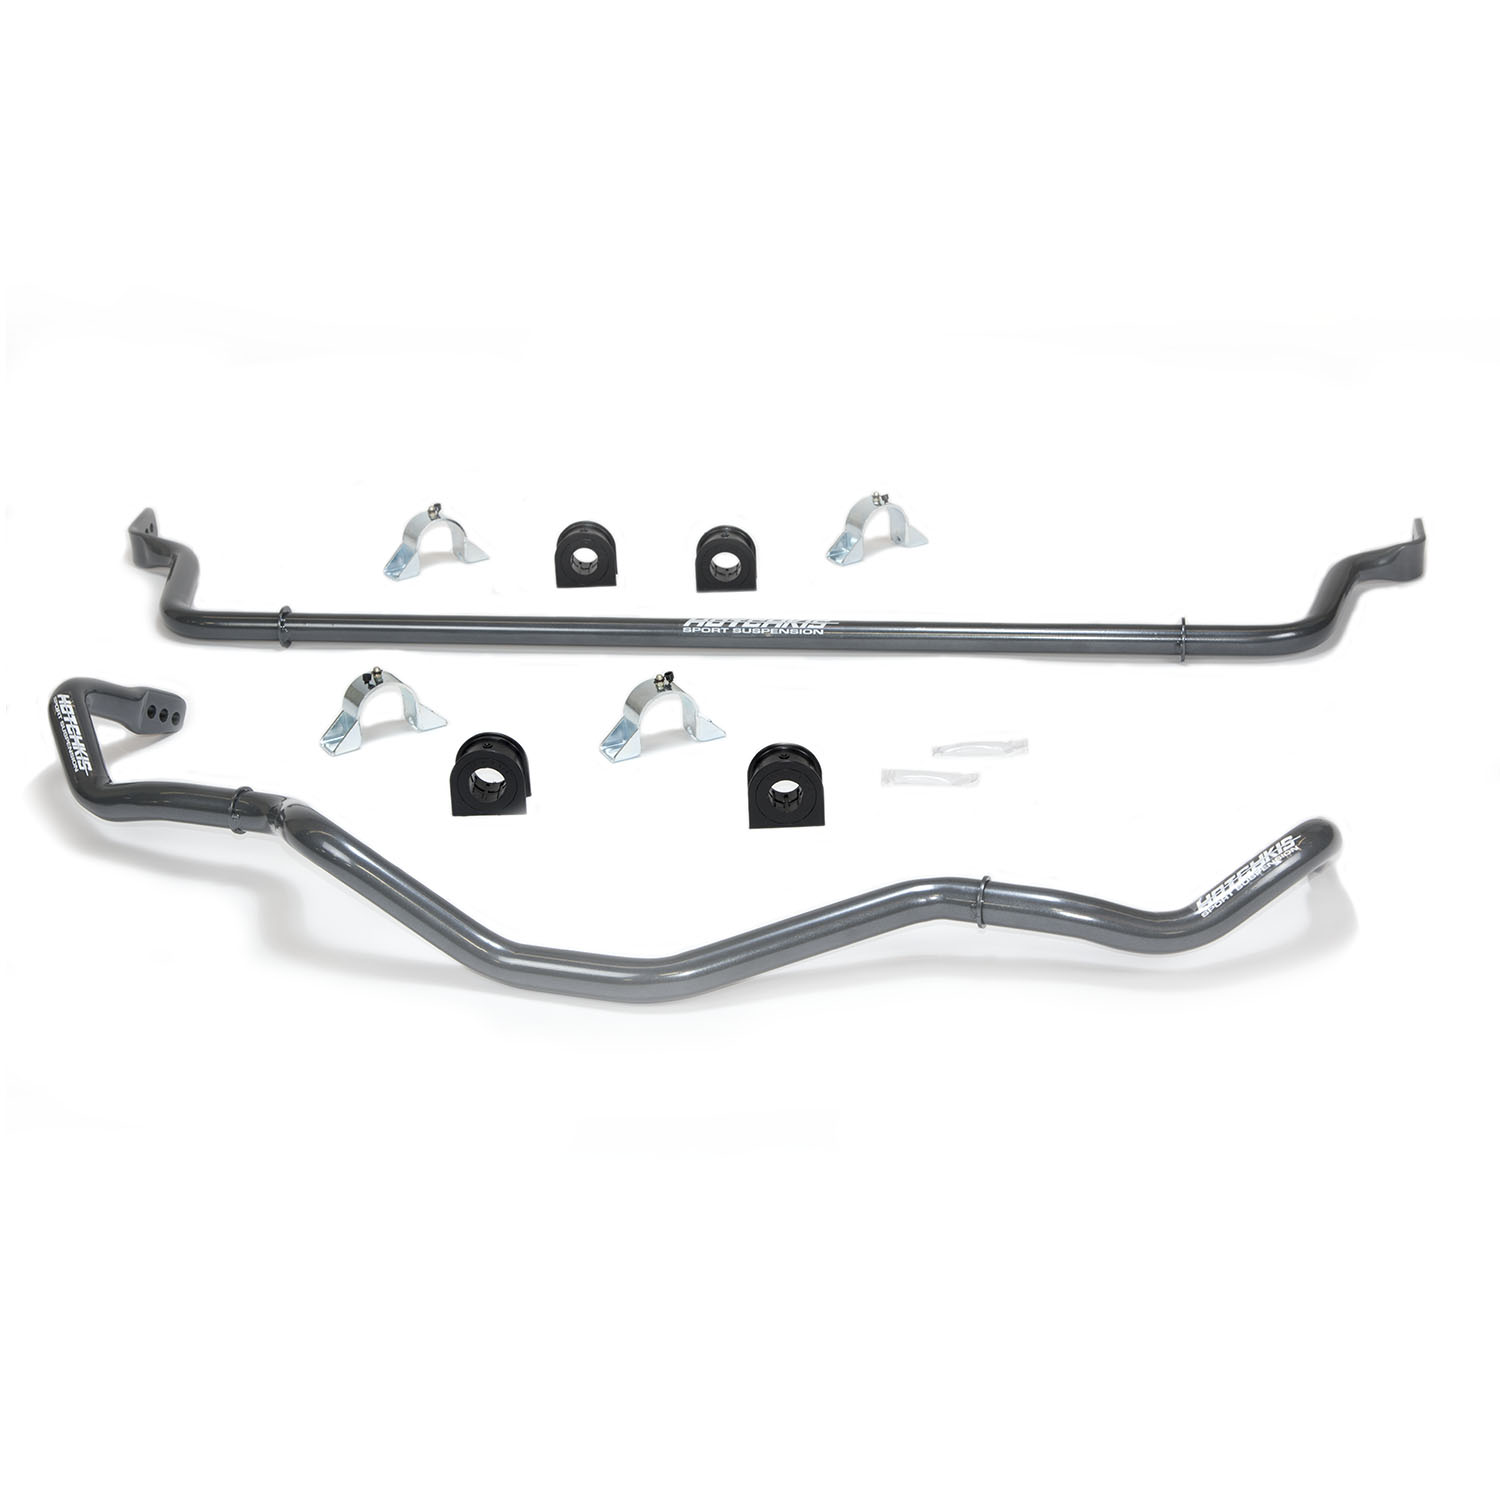 2016-2019 Chevy Camaro (V8) Adjustable Competition Sway Bars By Hotchkis